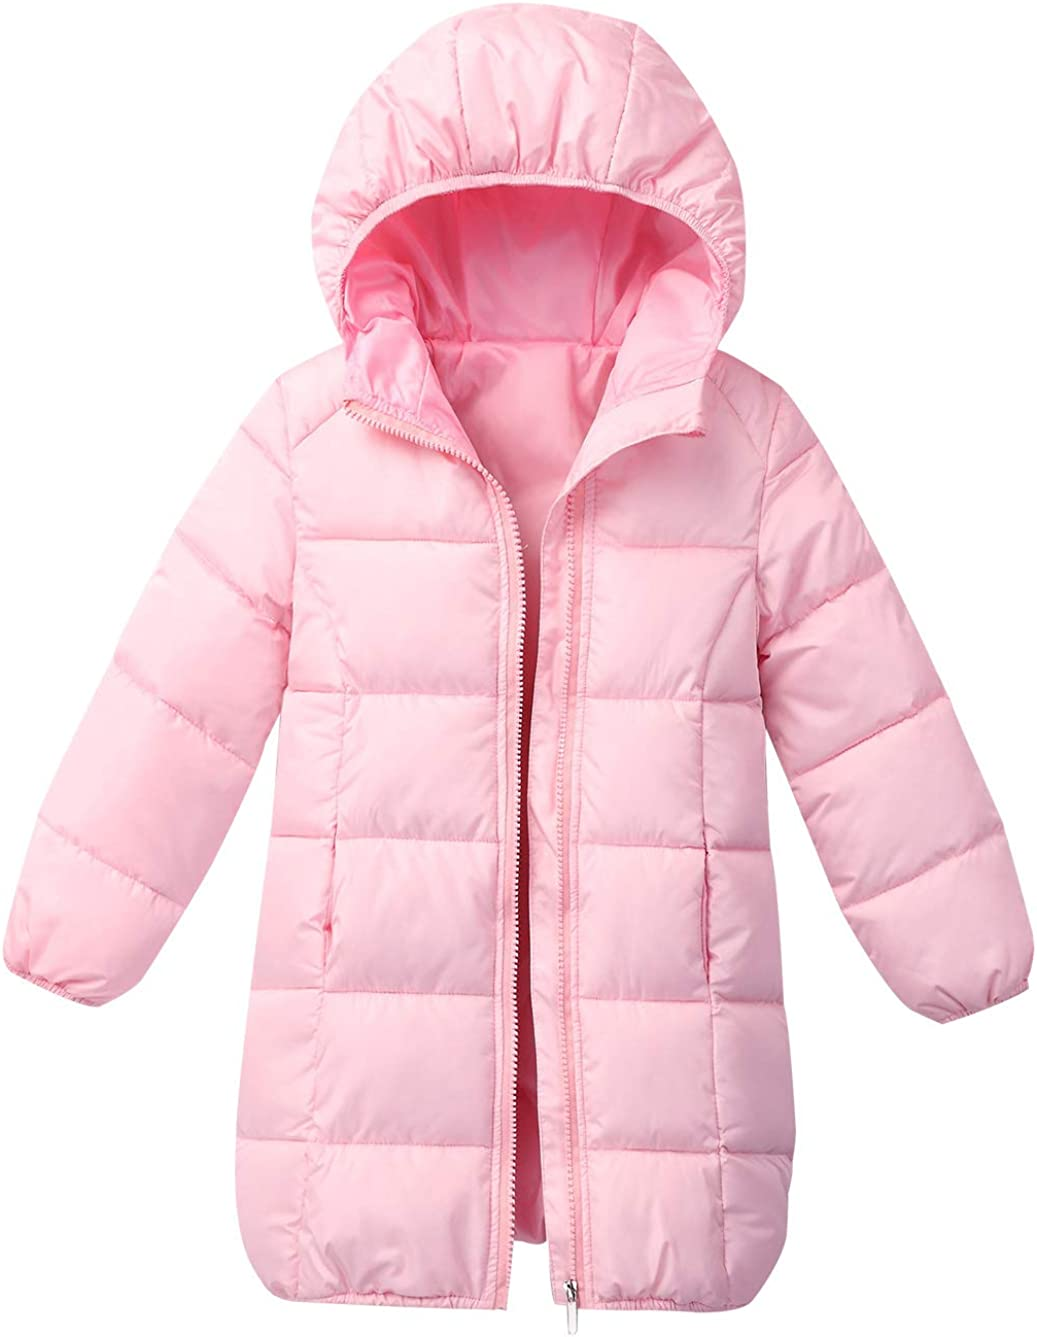 Cromoncent Boy and Girl Winter Hooded Puffer Packable Down Parka Coat Outwear